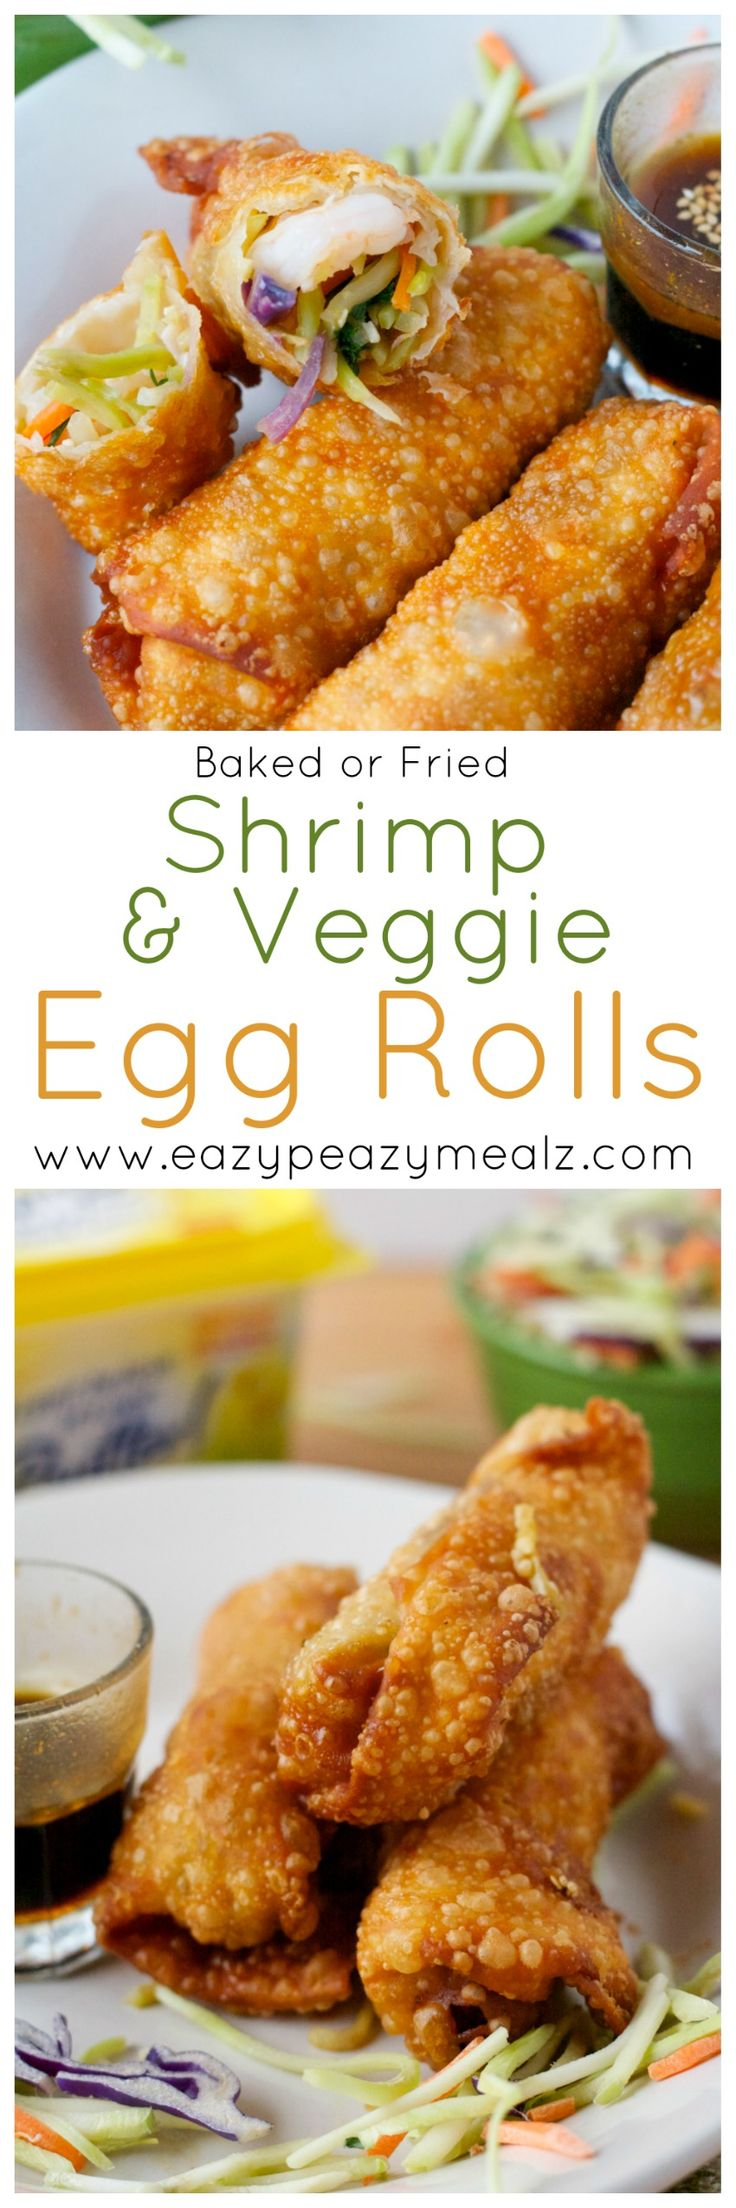 Shrimp and Veggie Egg Rolls: These can be baked or fried and have a secret ingredient that makes them extra crunchy and delicious! Skip take out, make these babies! #ad -Eazy Peazy Mealz